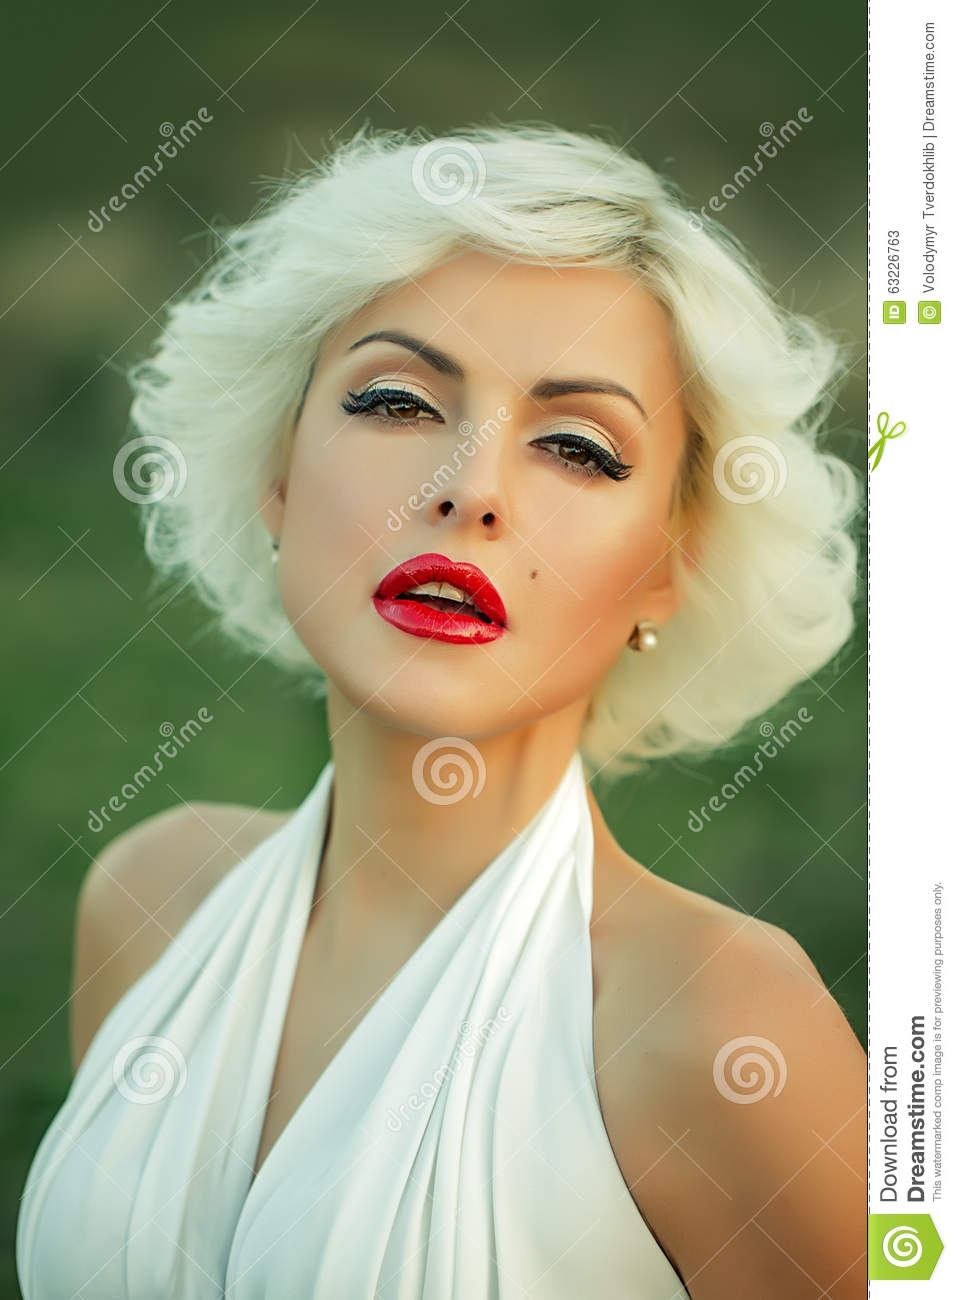 monroe Young blonde